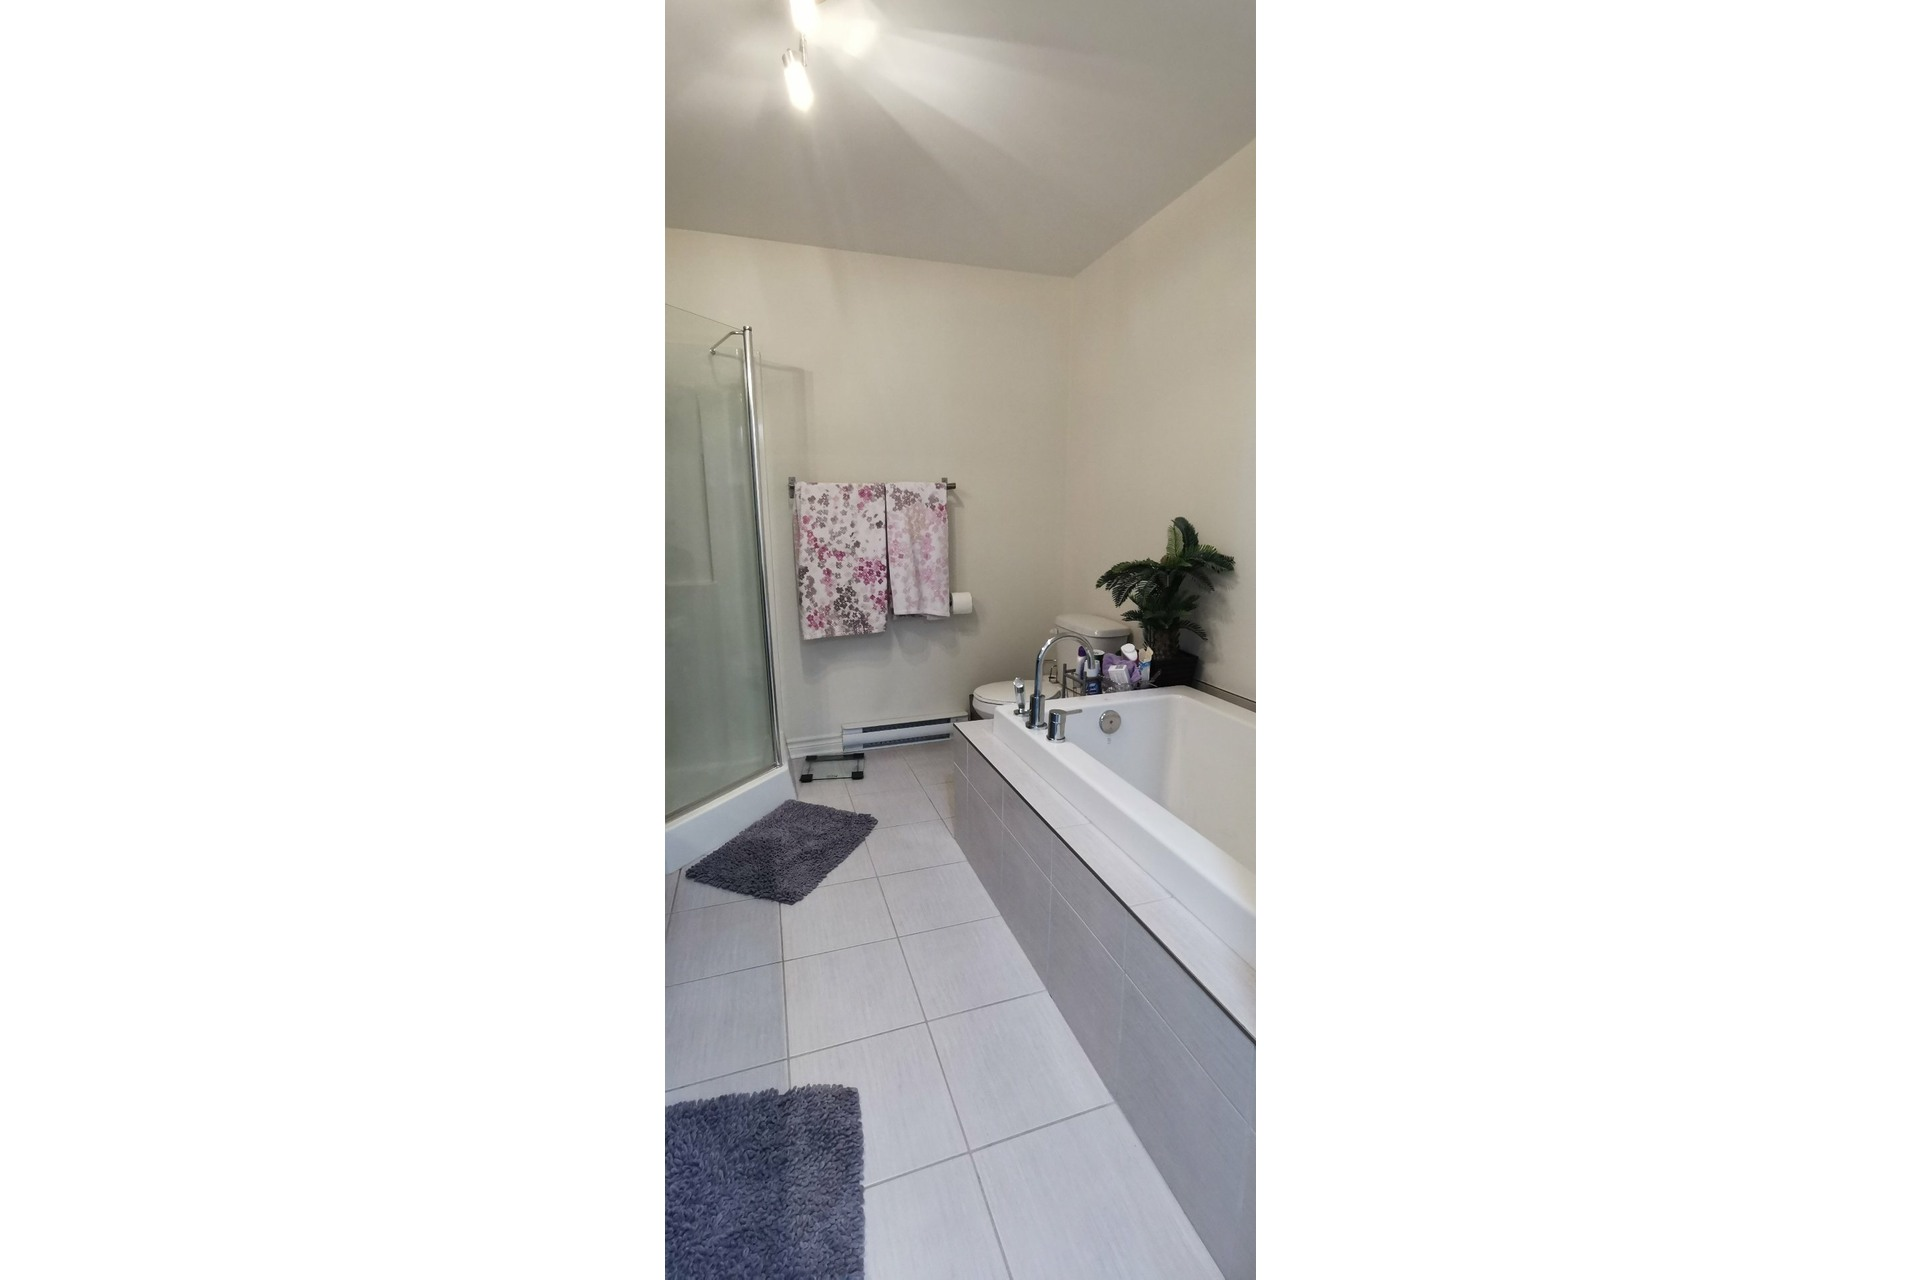 image 15 - House For rent Candiac - 9 rooms